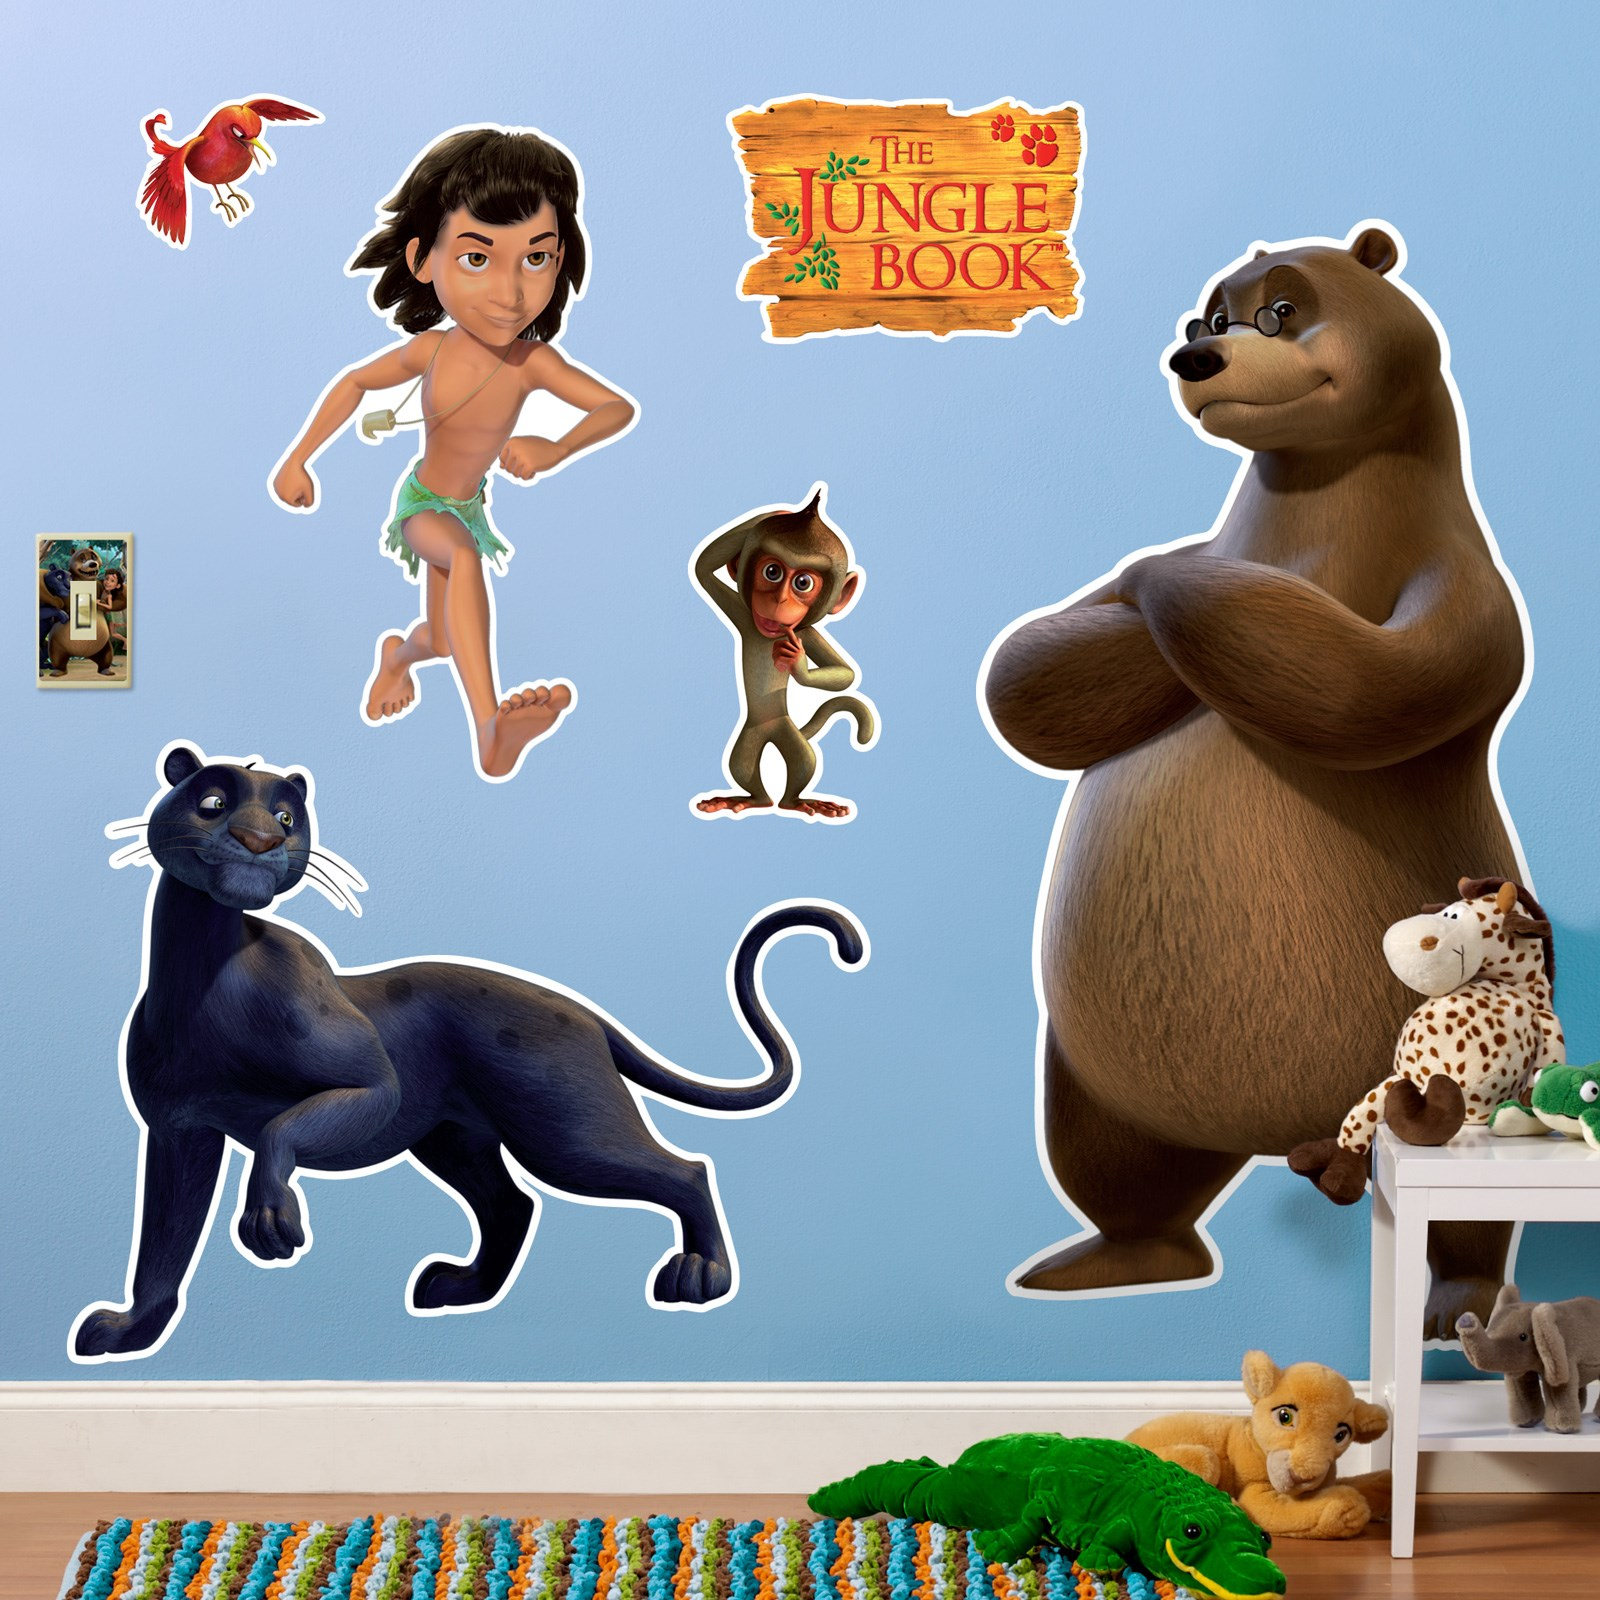 giant jungle wall stickers images giant jungle animal wall stickers giant dinosaur wall